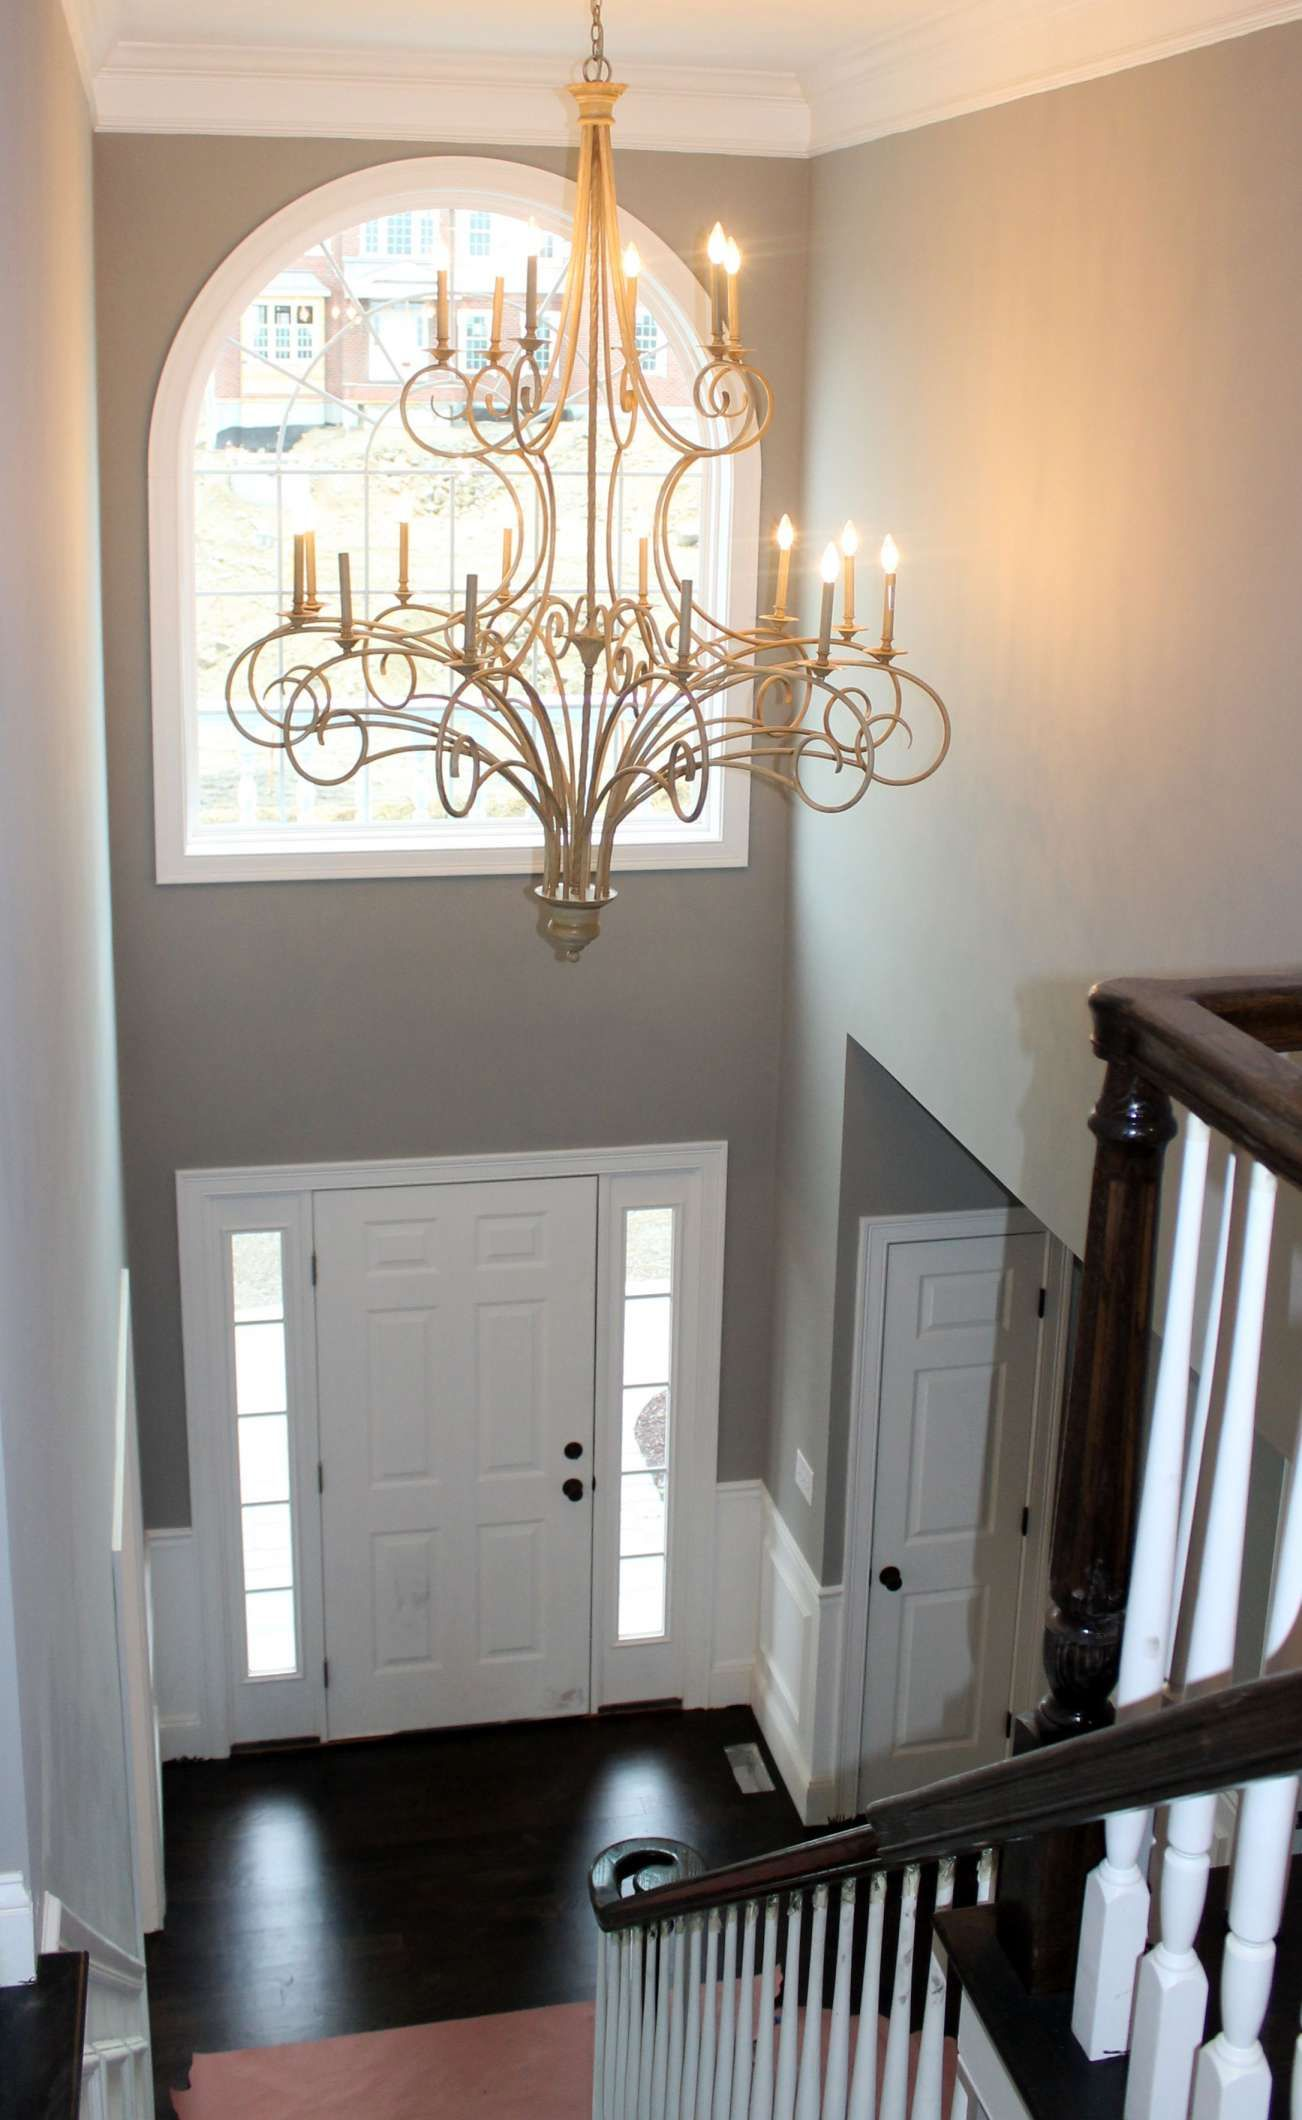 16 Top Paint Foyer Ideas Gallery Fashion In 2020 Foyer Paint